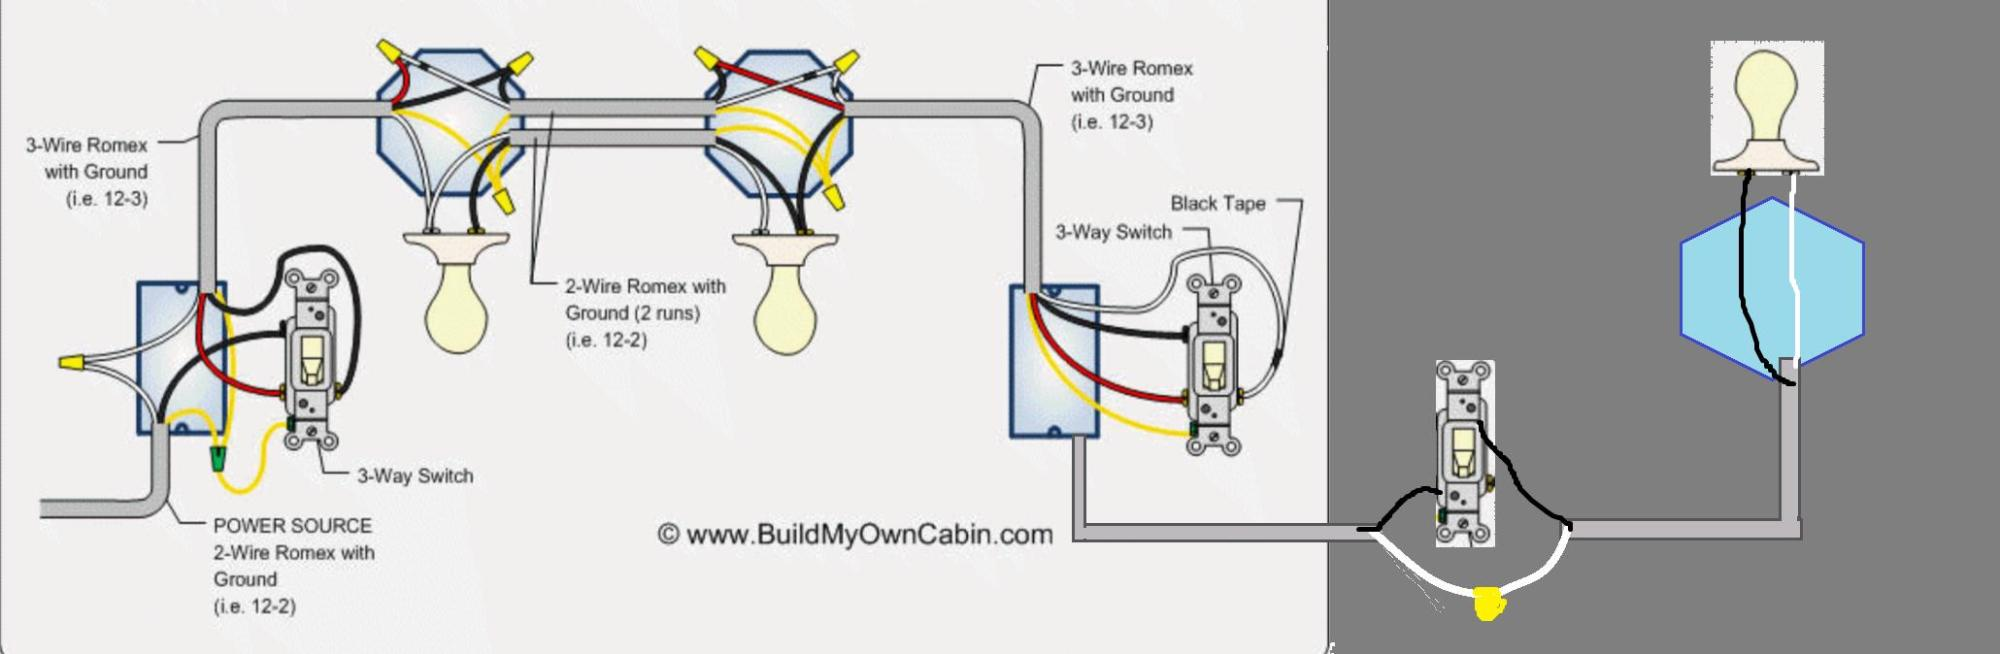 hight resolution of wiring 3 way switch with ground 2 database wiring diagram 3 way switch wiring diagram 2wire